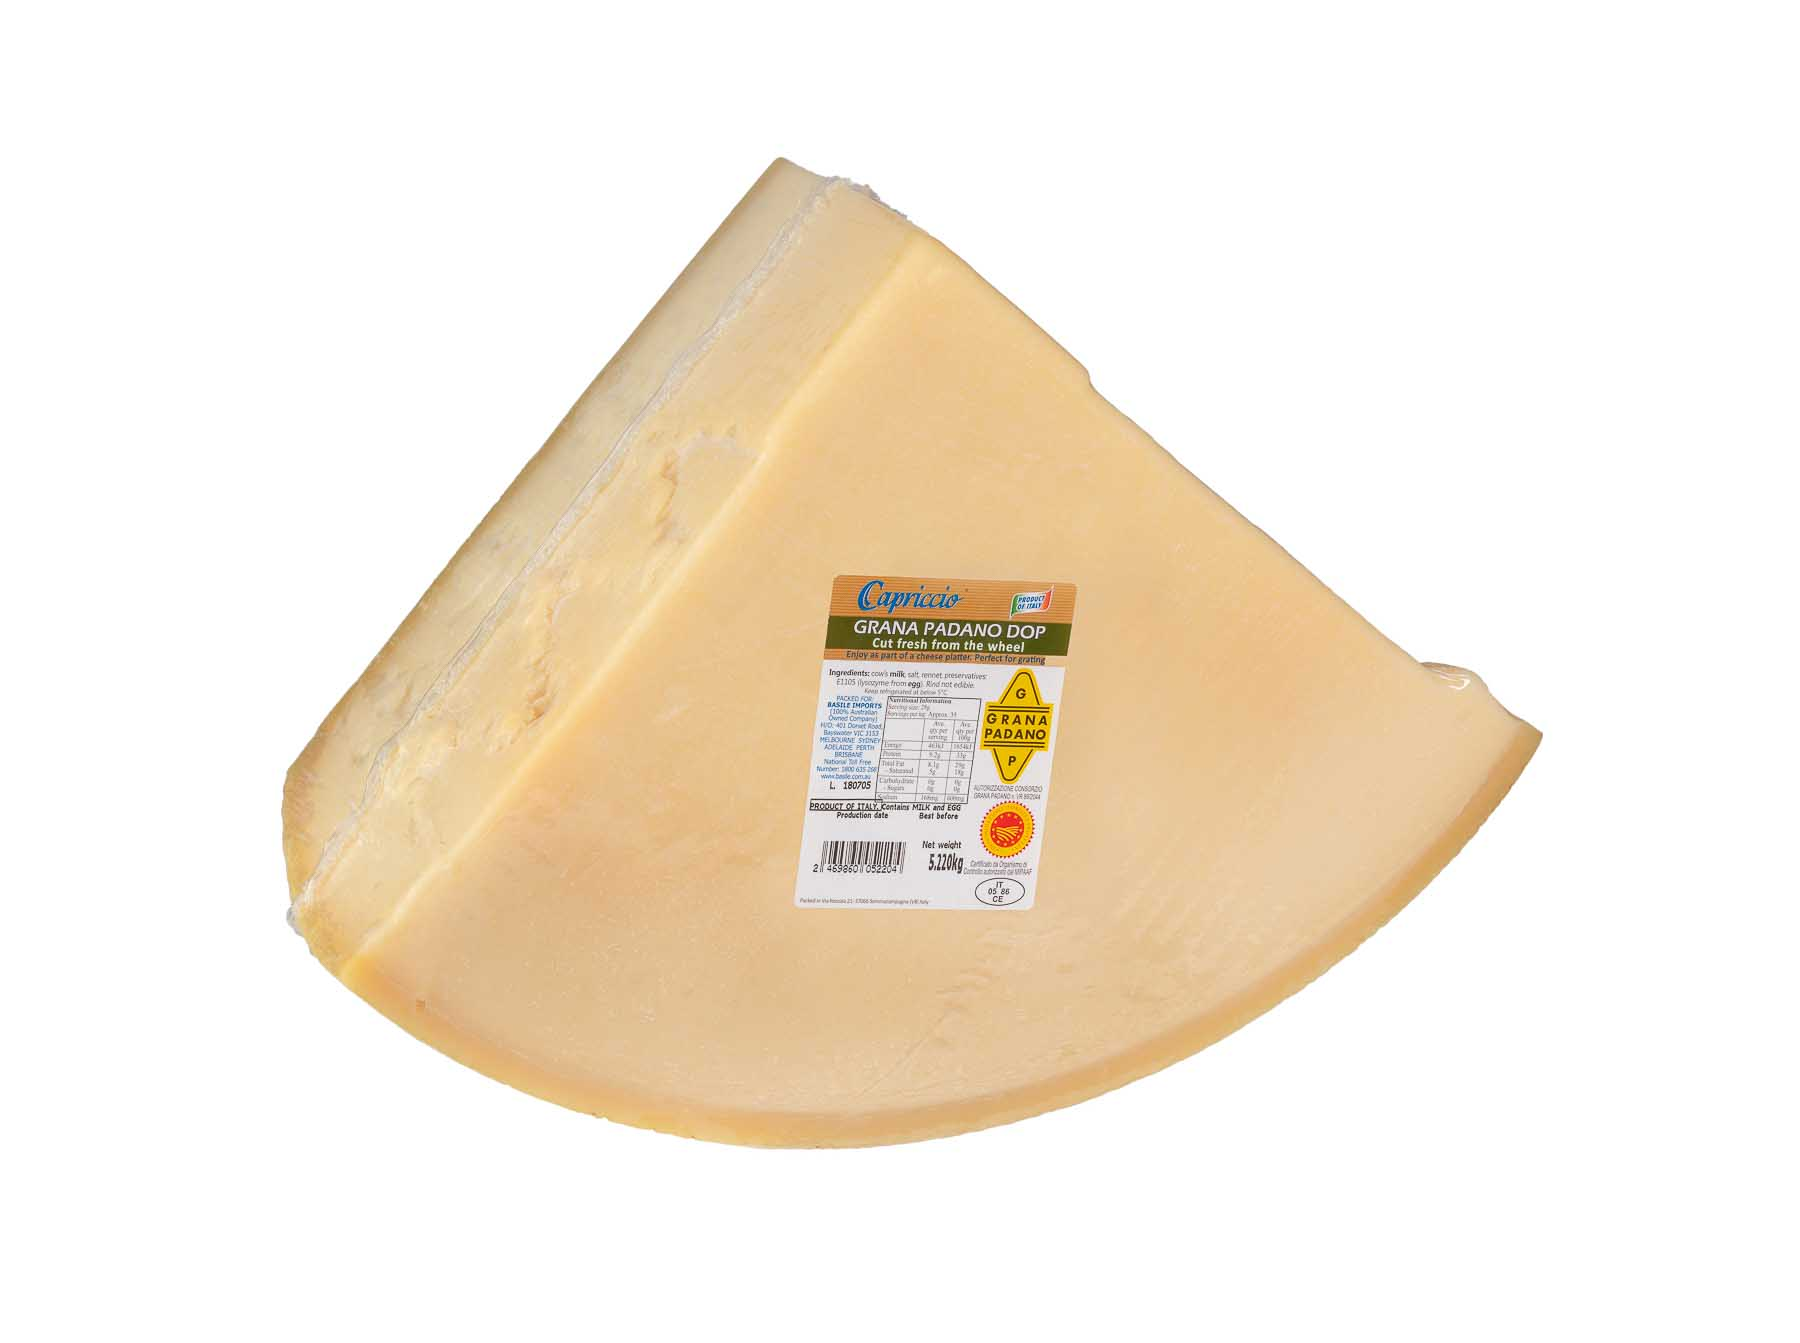 Cheese Grana Padano DOP 5.22Kg - Product Photography sample